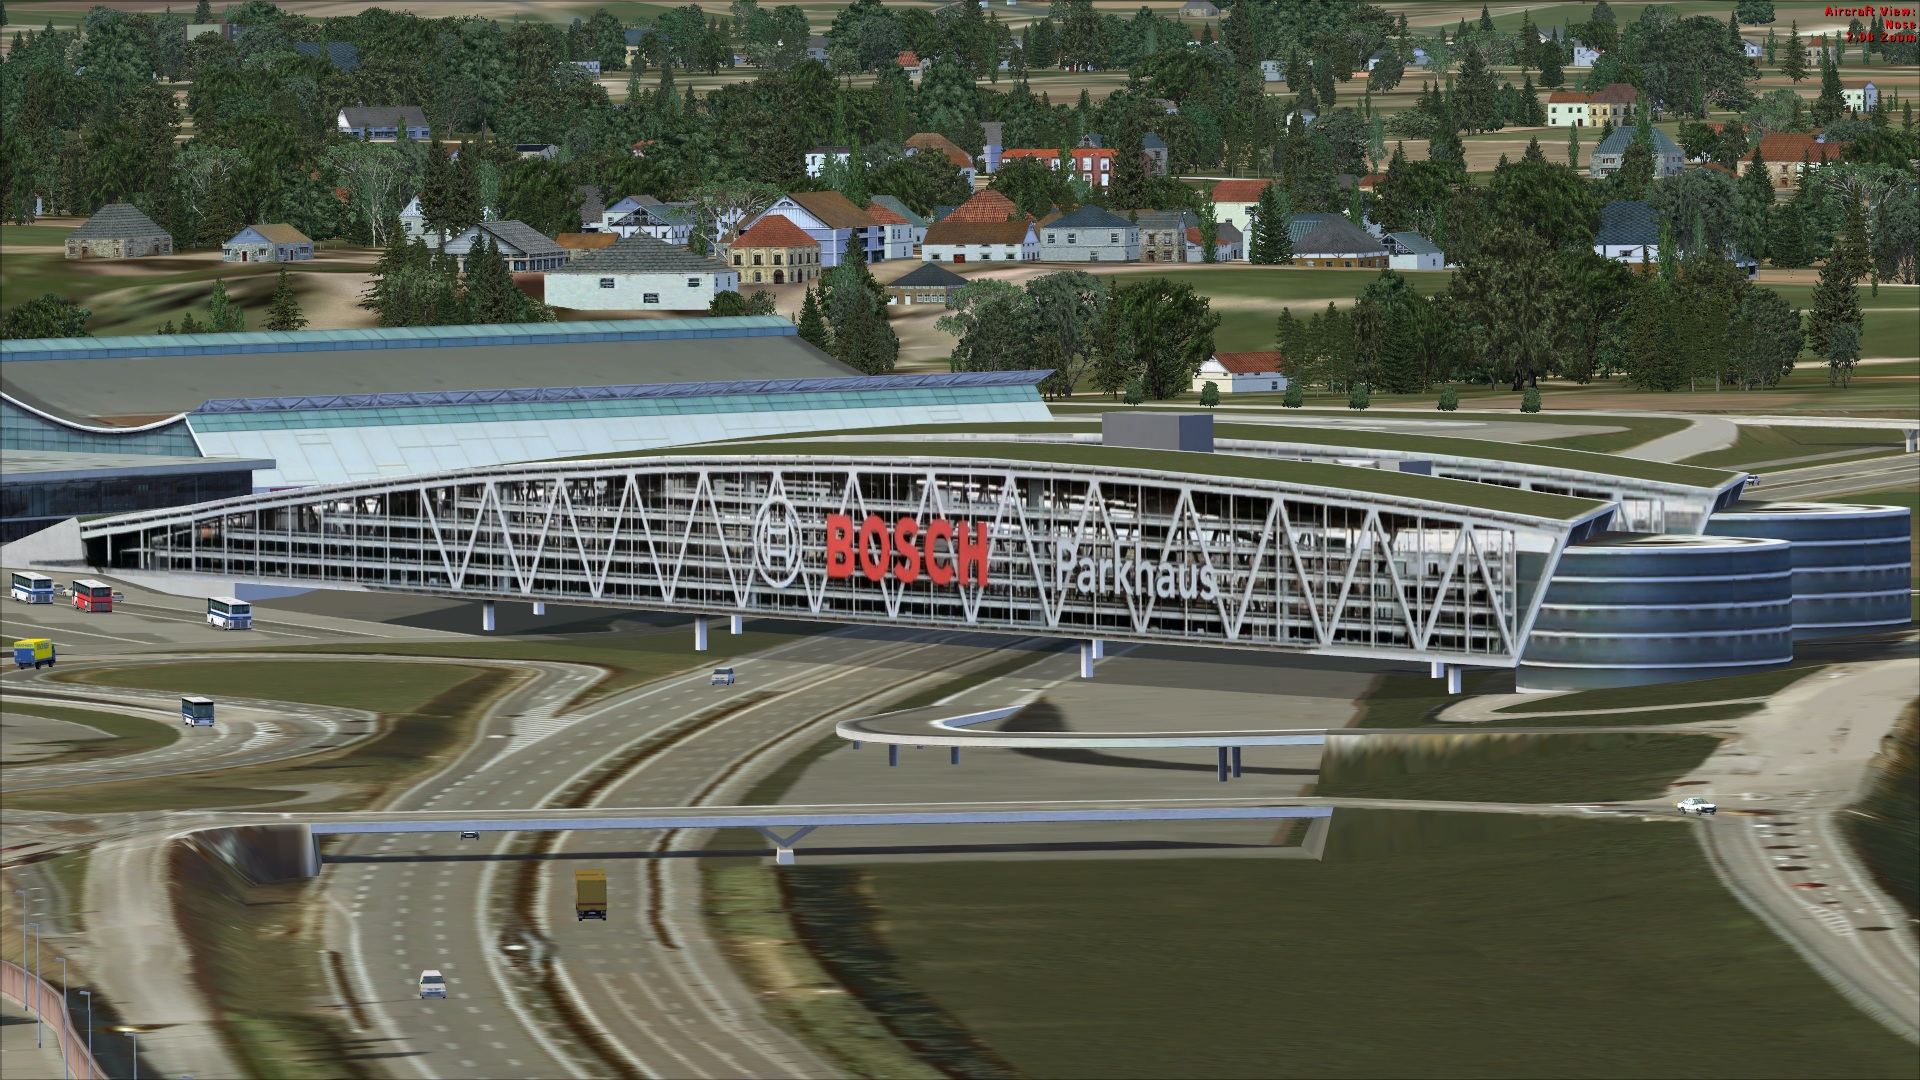 aerosoft german airports 1 stuttgart x for fsx review stuttgart edds is an international. Black Bedroom Furniture Sets. Home Design Ideas